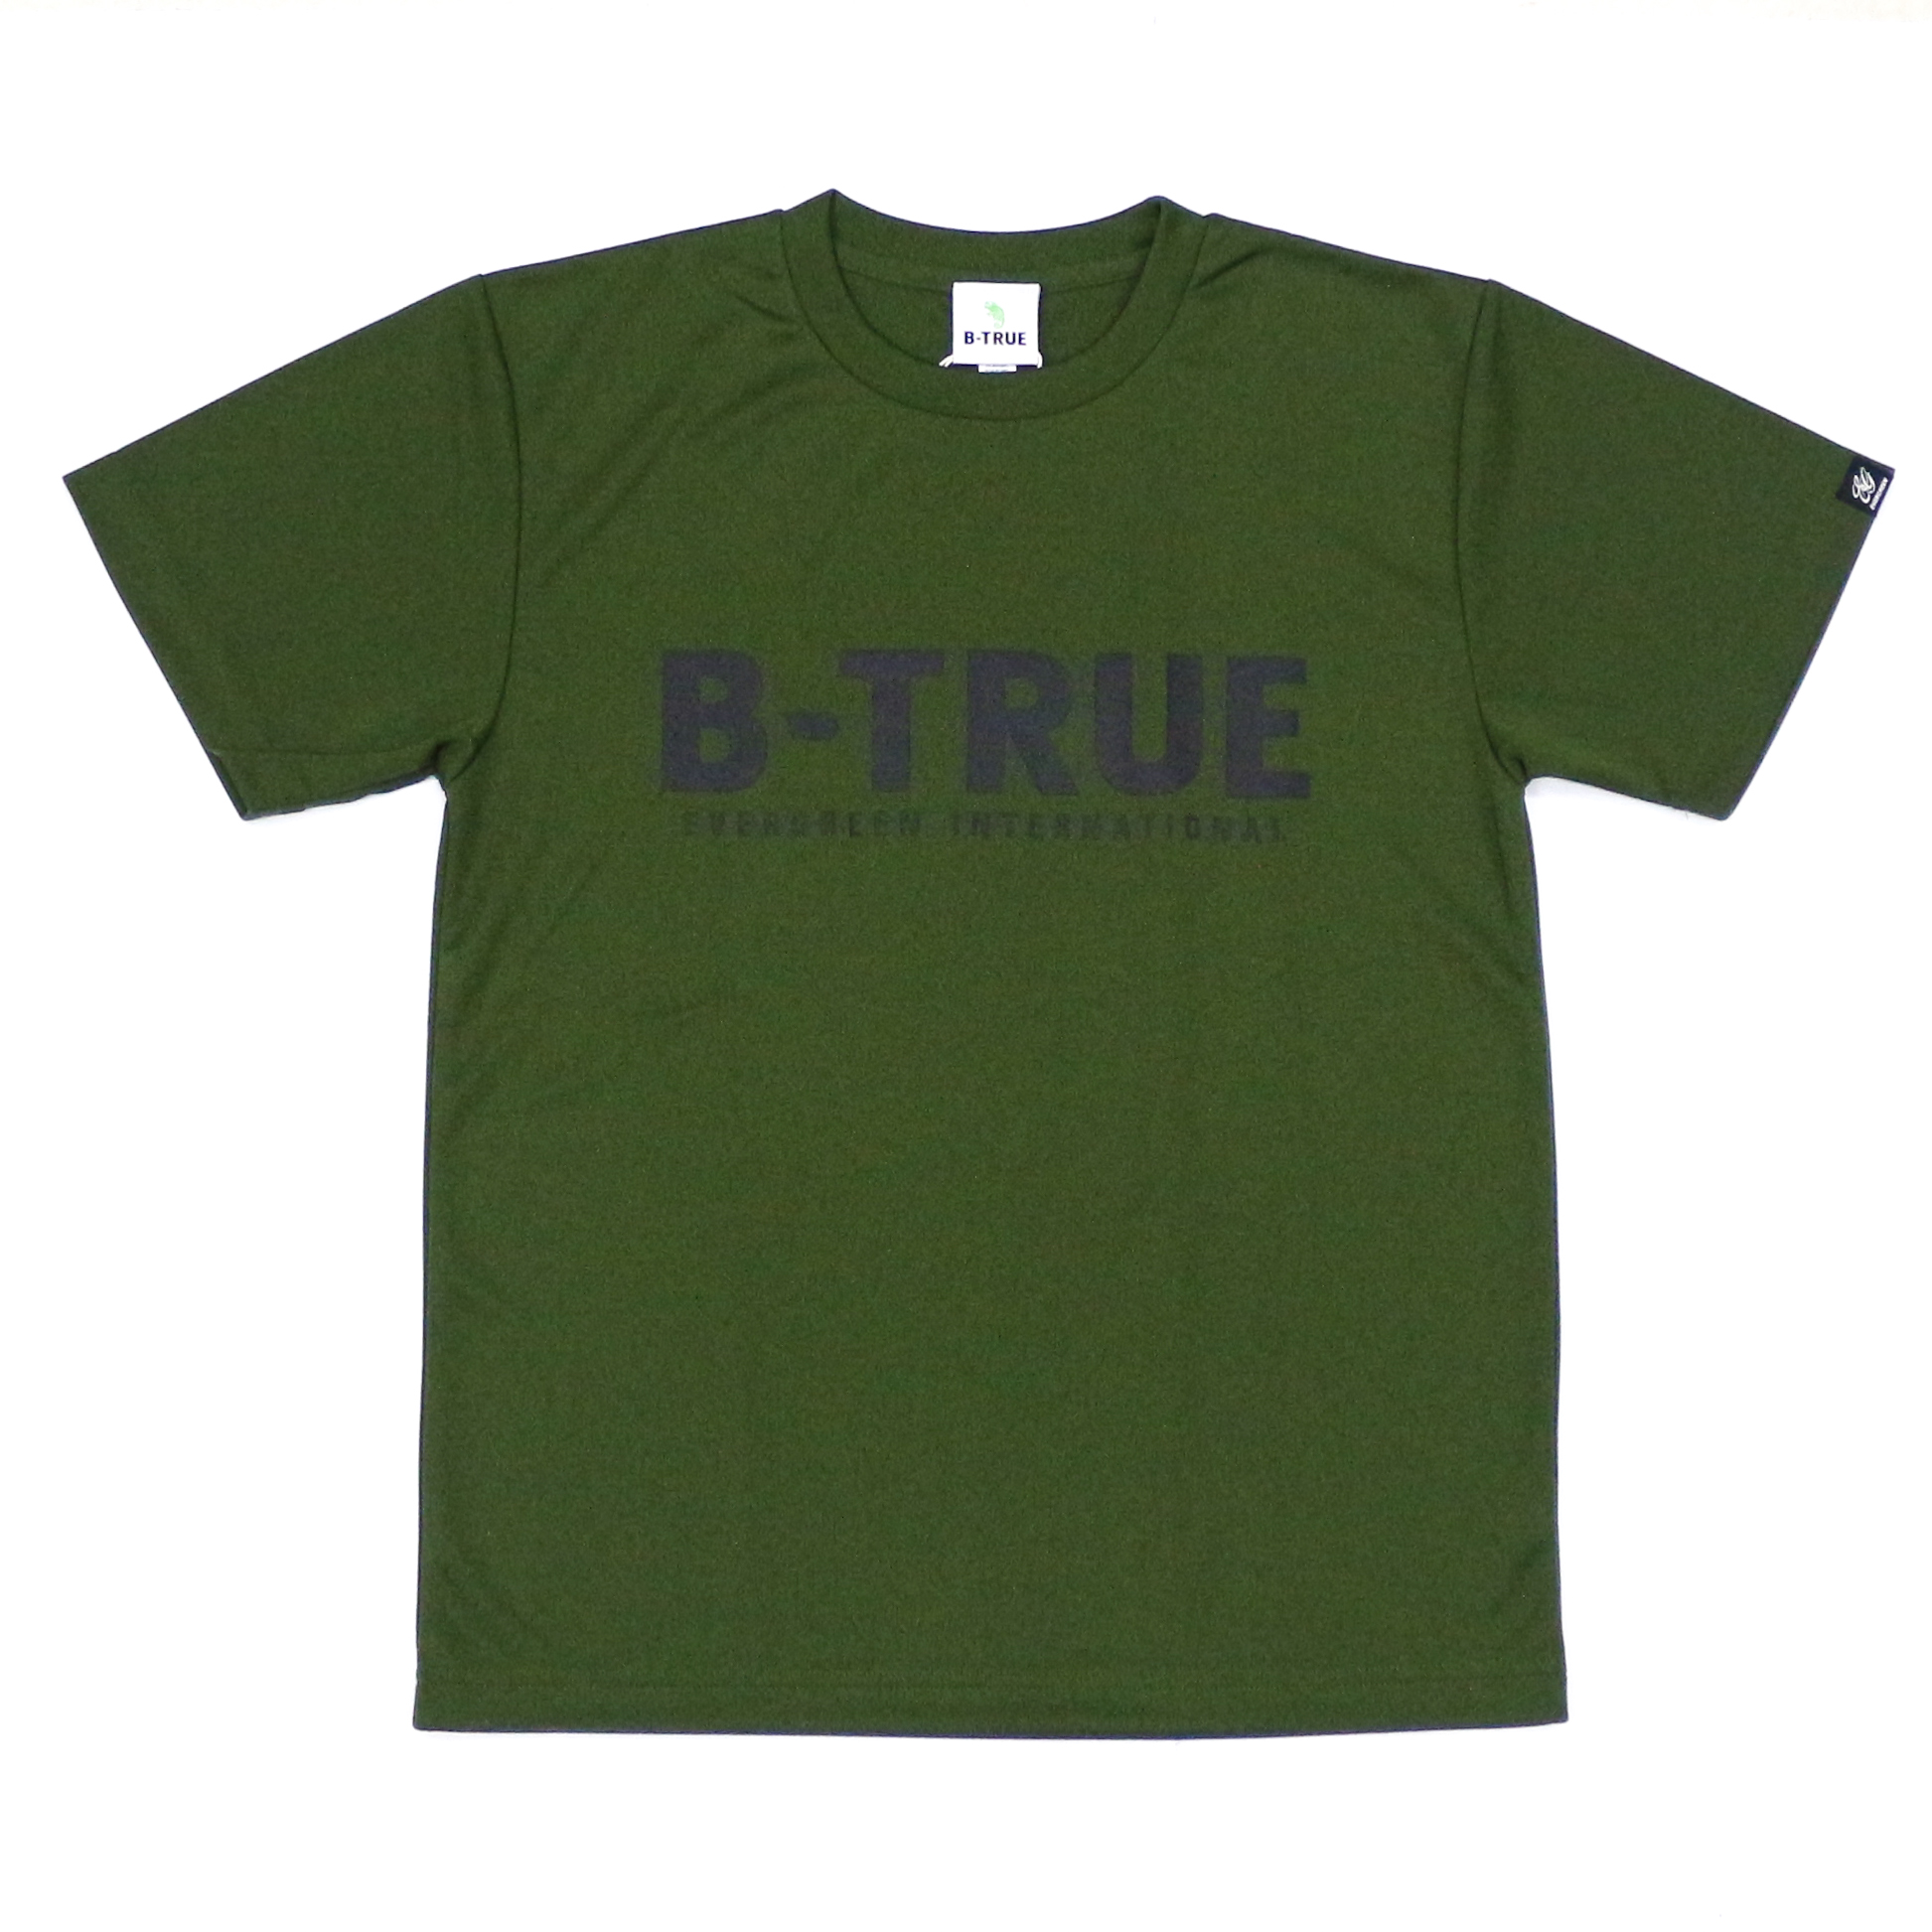 Evergreen T-Shirt Dry Fit Short Sleeve B-True A Type Size S Olive (6550)